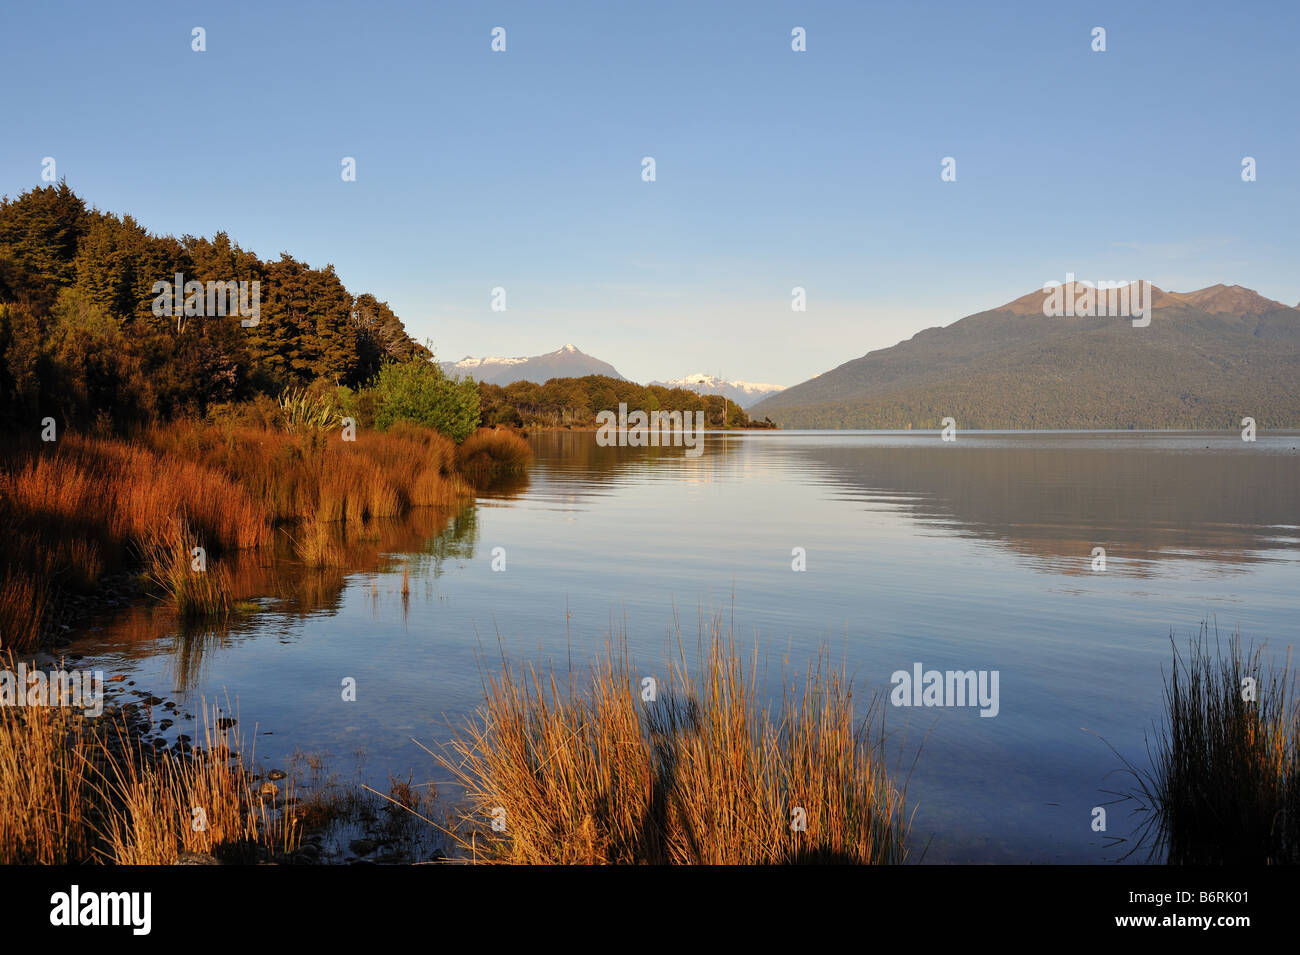 Lake Te Anau, New Zealand on the road to Milford sound - Stock Image